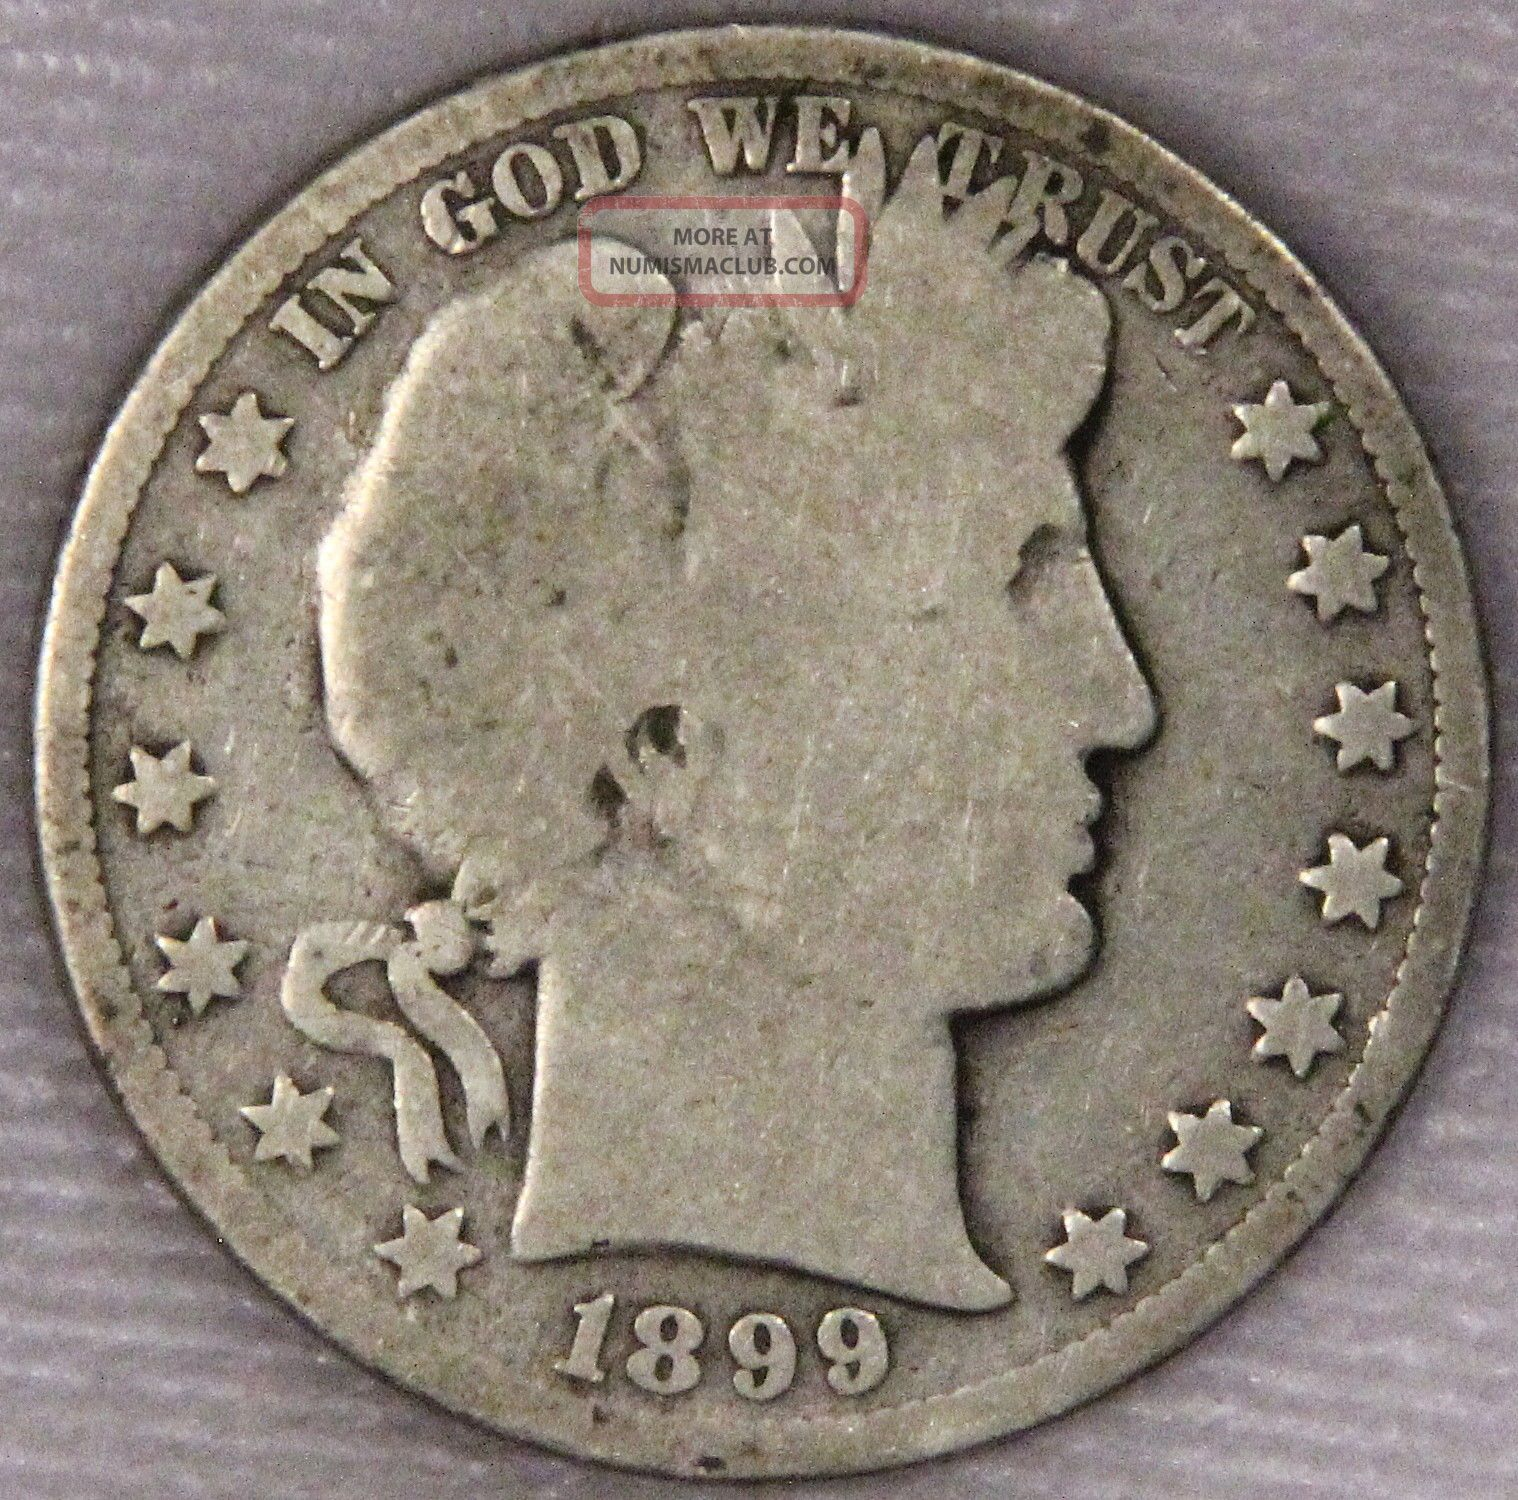 1899 Barber Half Dollar Grade Ag/g As Pictured Inv 340 Half Dollars photo